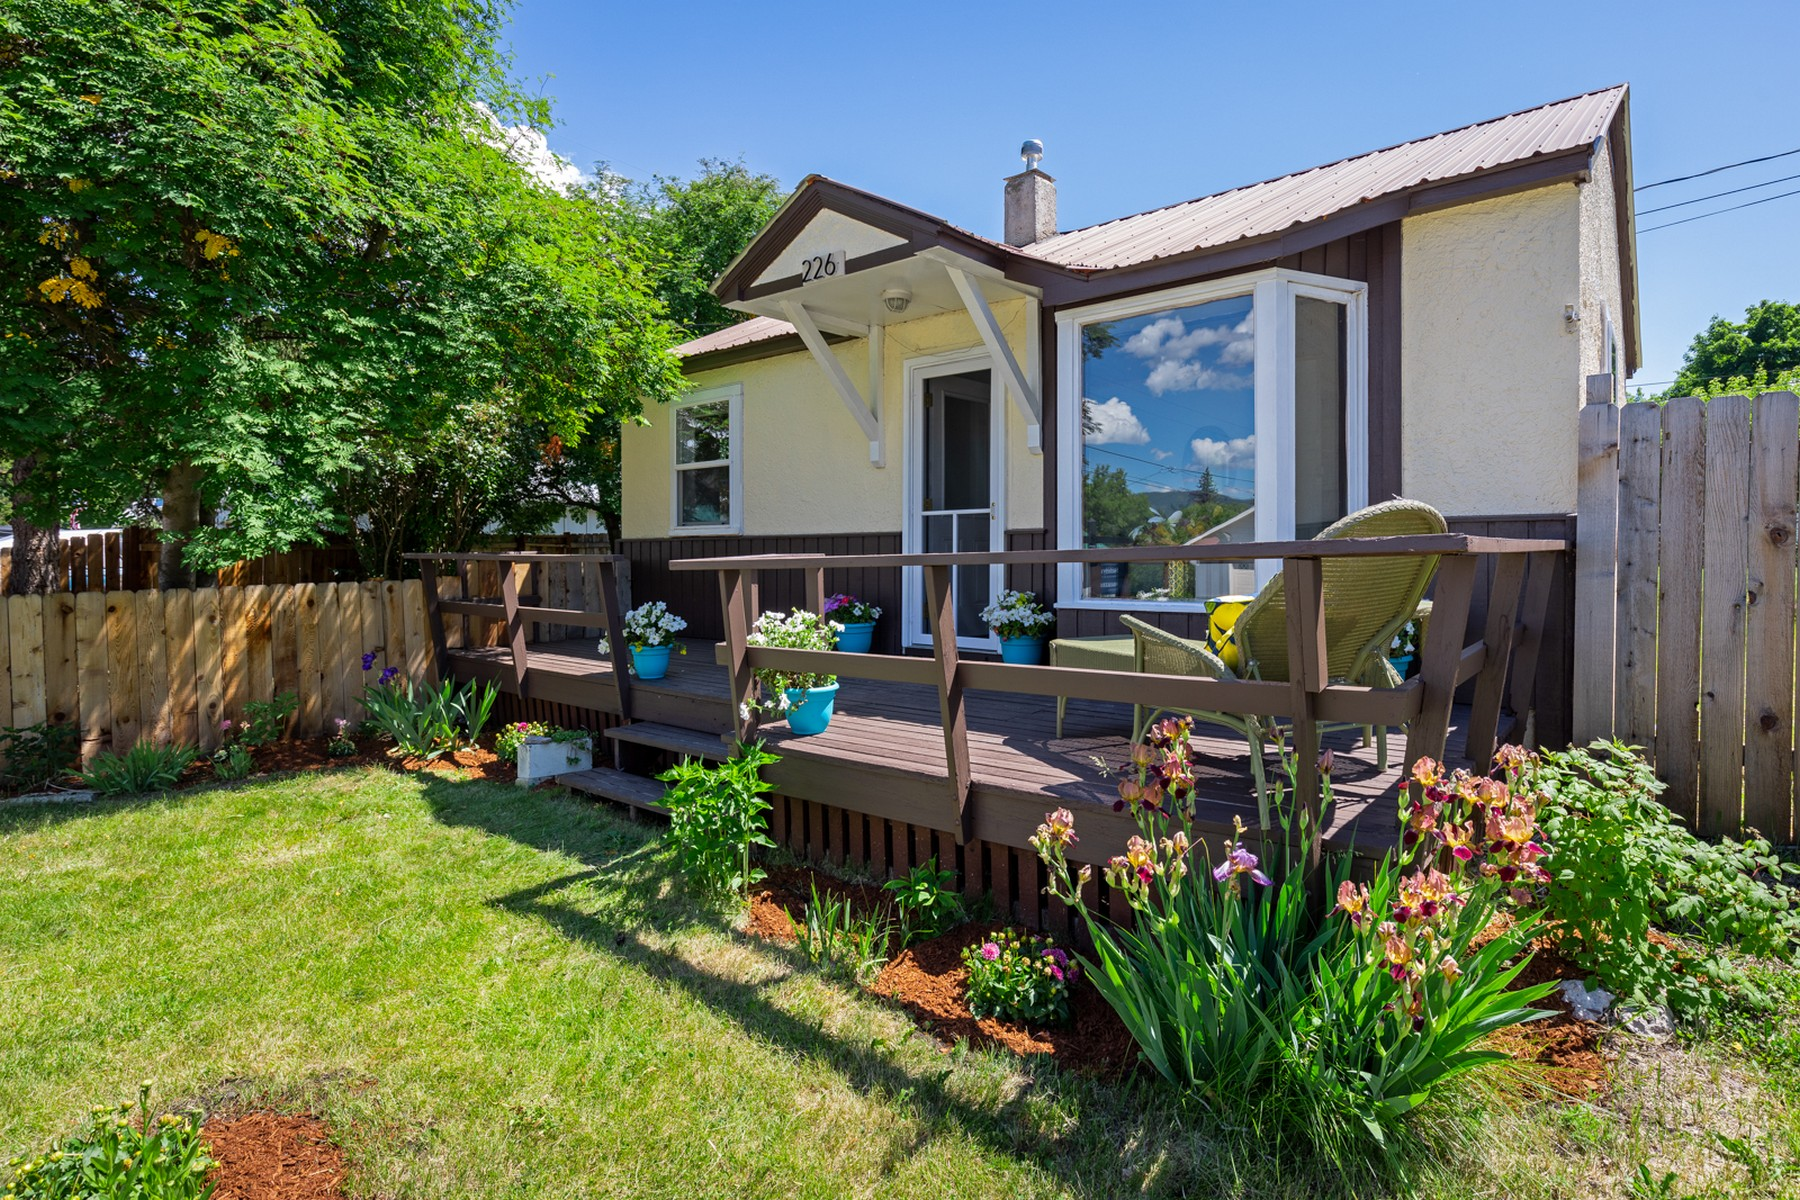 Single Family Homes for Sale at 226 4th Street Columbia Falls, Montana 59912 United States